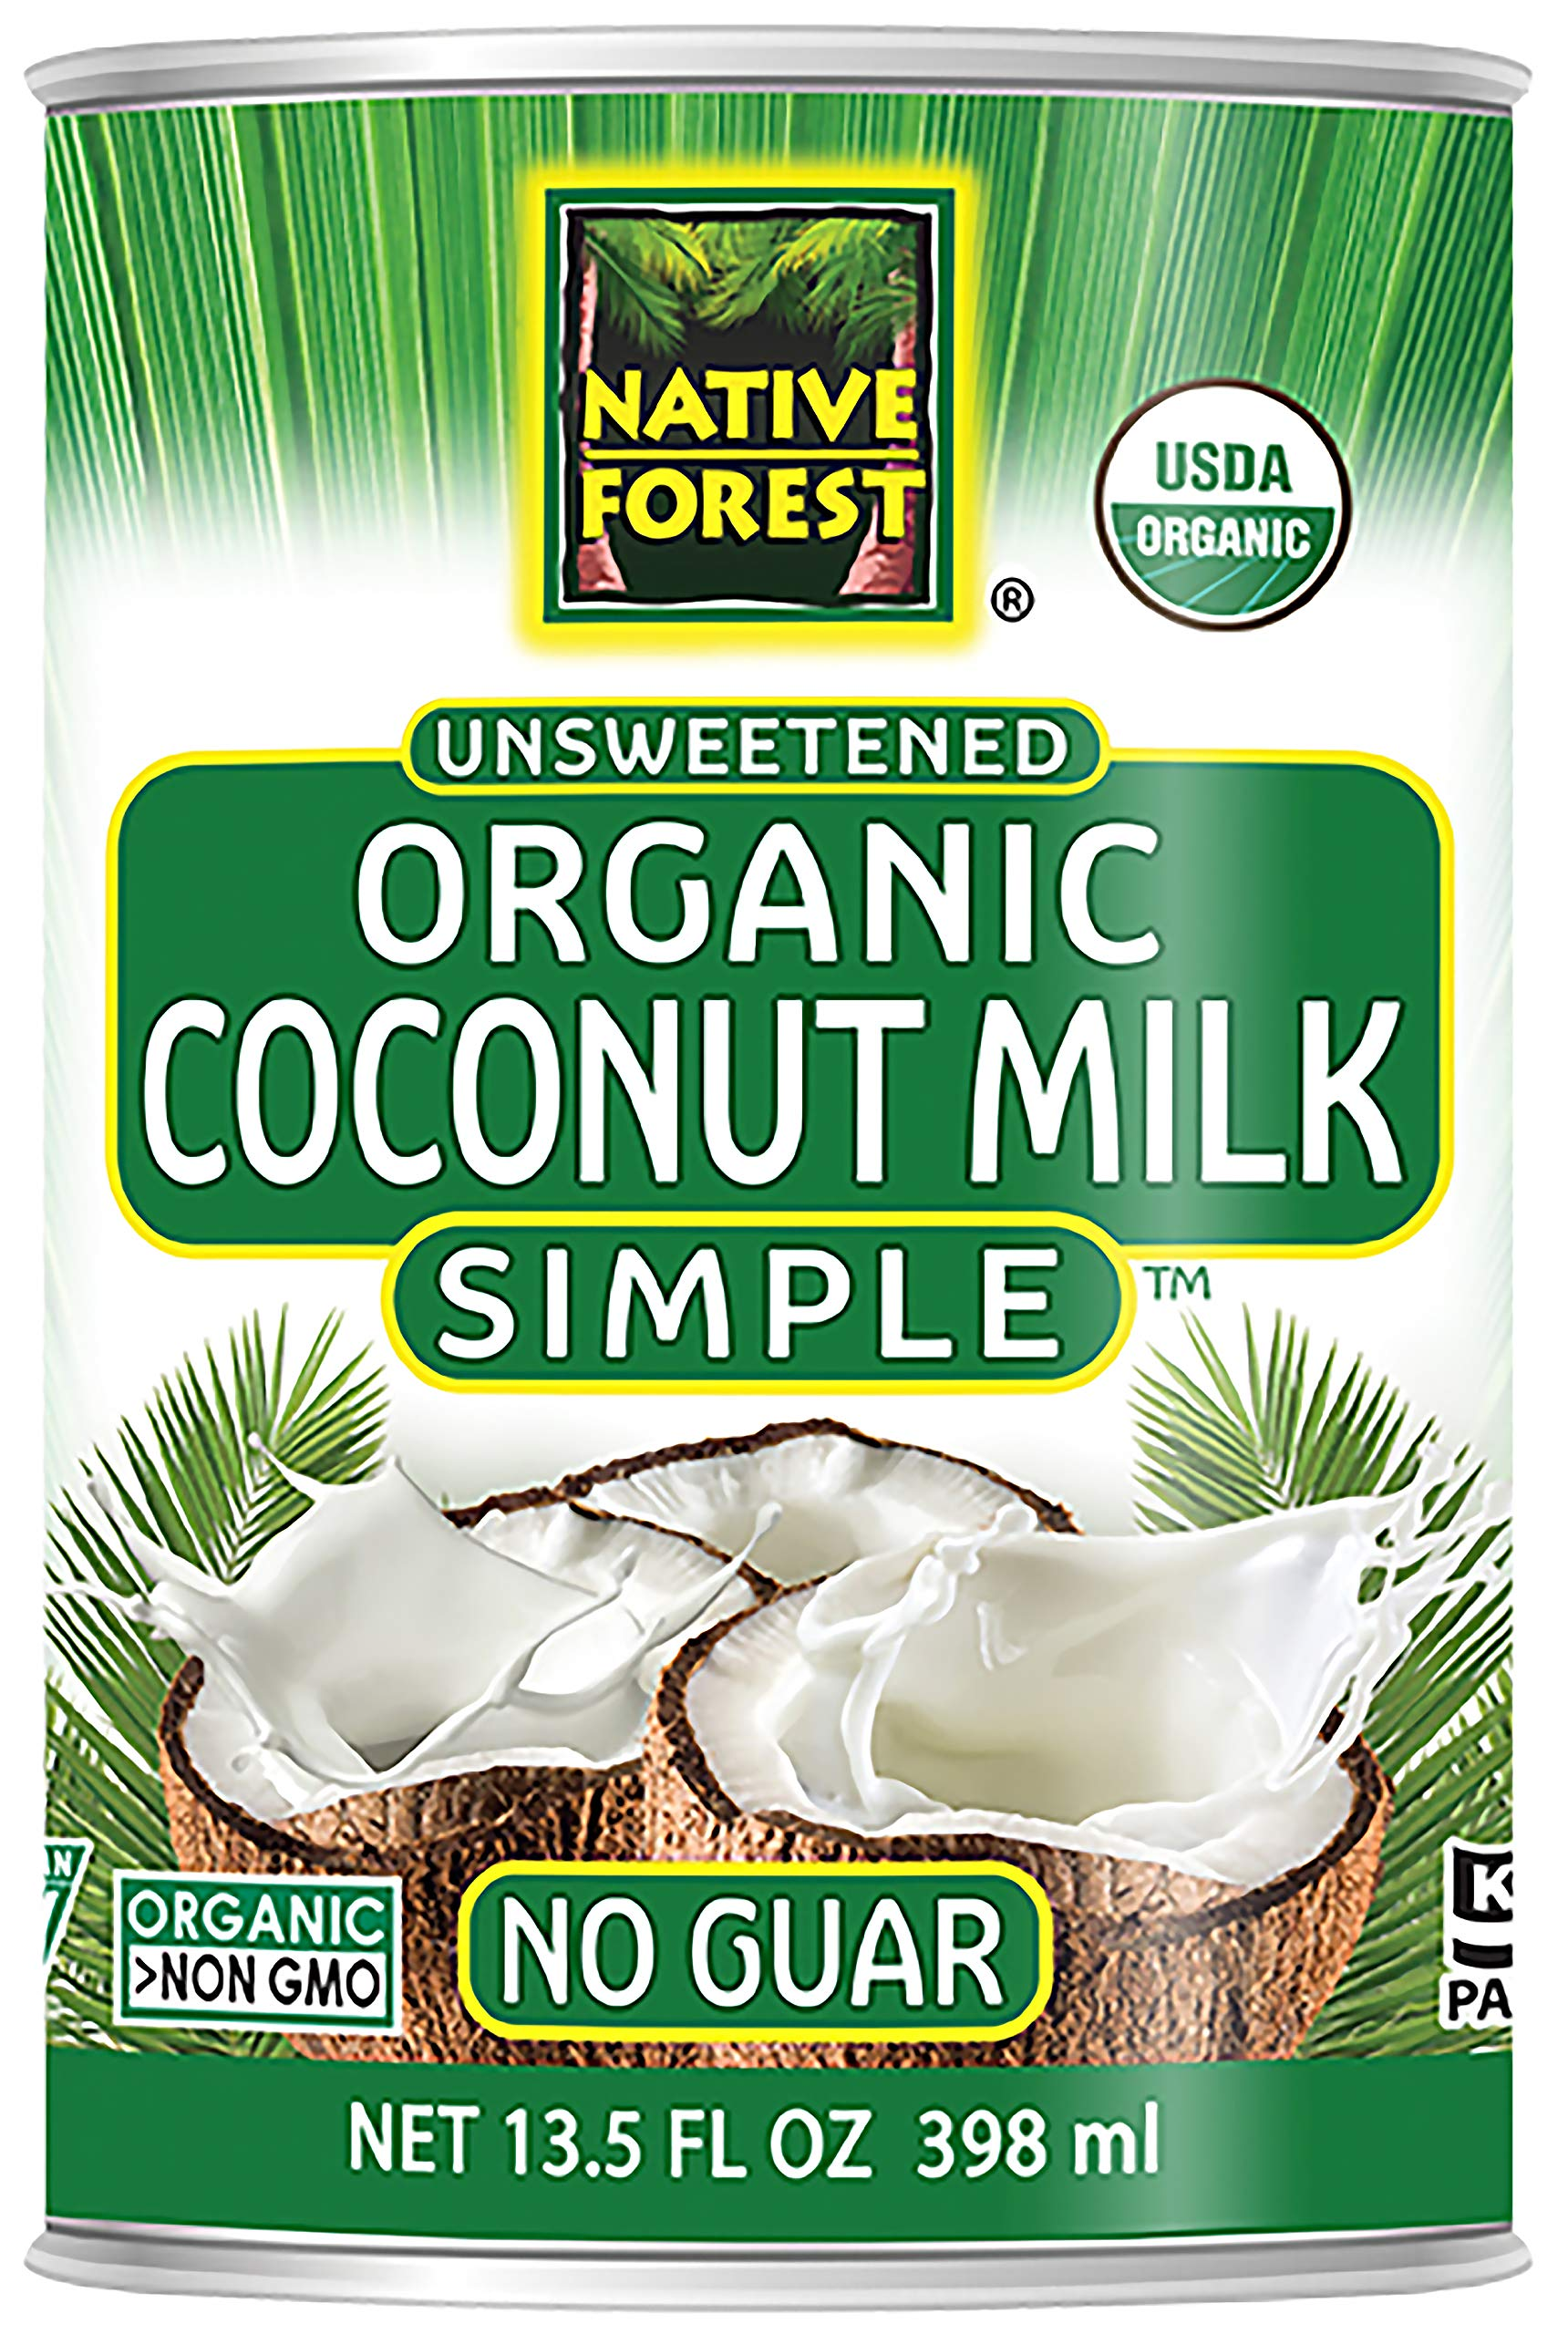 Native Forest Simple Organic Unsweetened Coconut Milk, 13.5 Ounce Cans (Pack of 12) by Edward & Sons